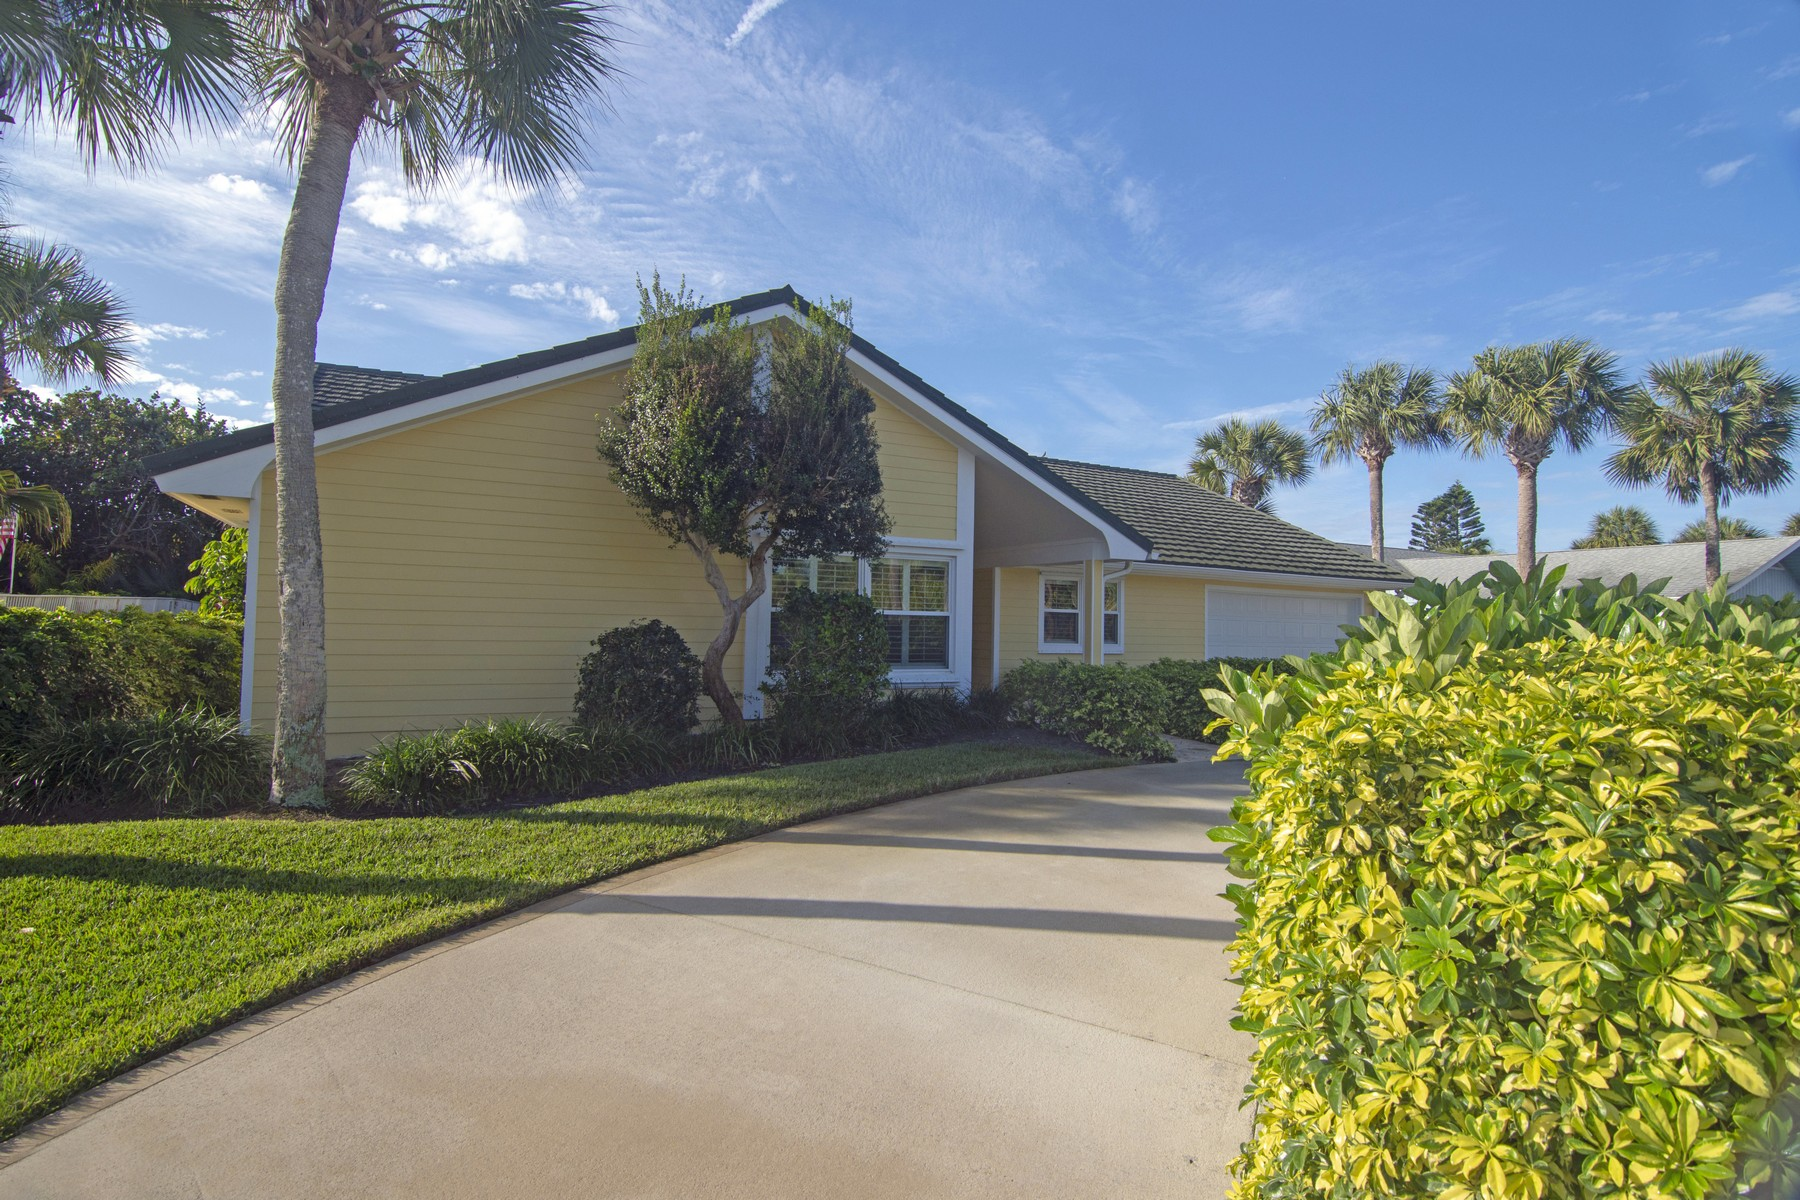 Single Family Home for Sale at Four Bedroom Home with Deeded Beach Access 1371 Sea Hawk Lane Vero Beach, Florida 32963 United States